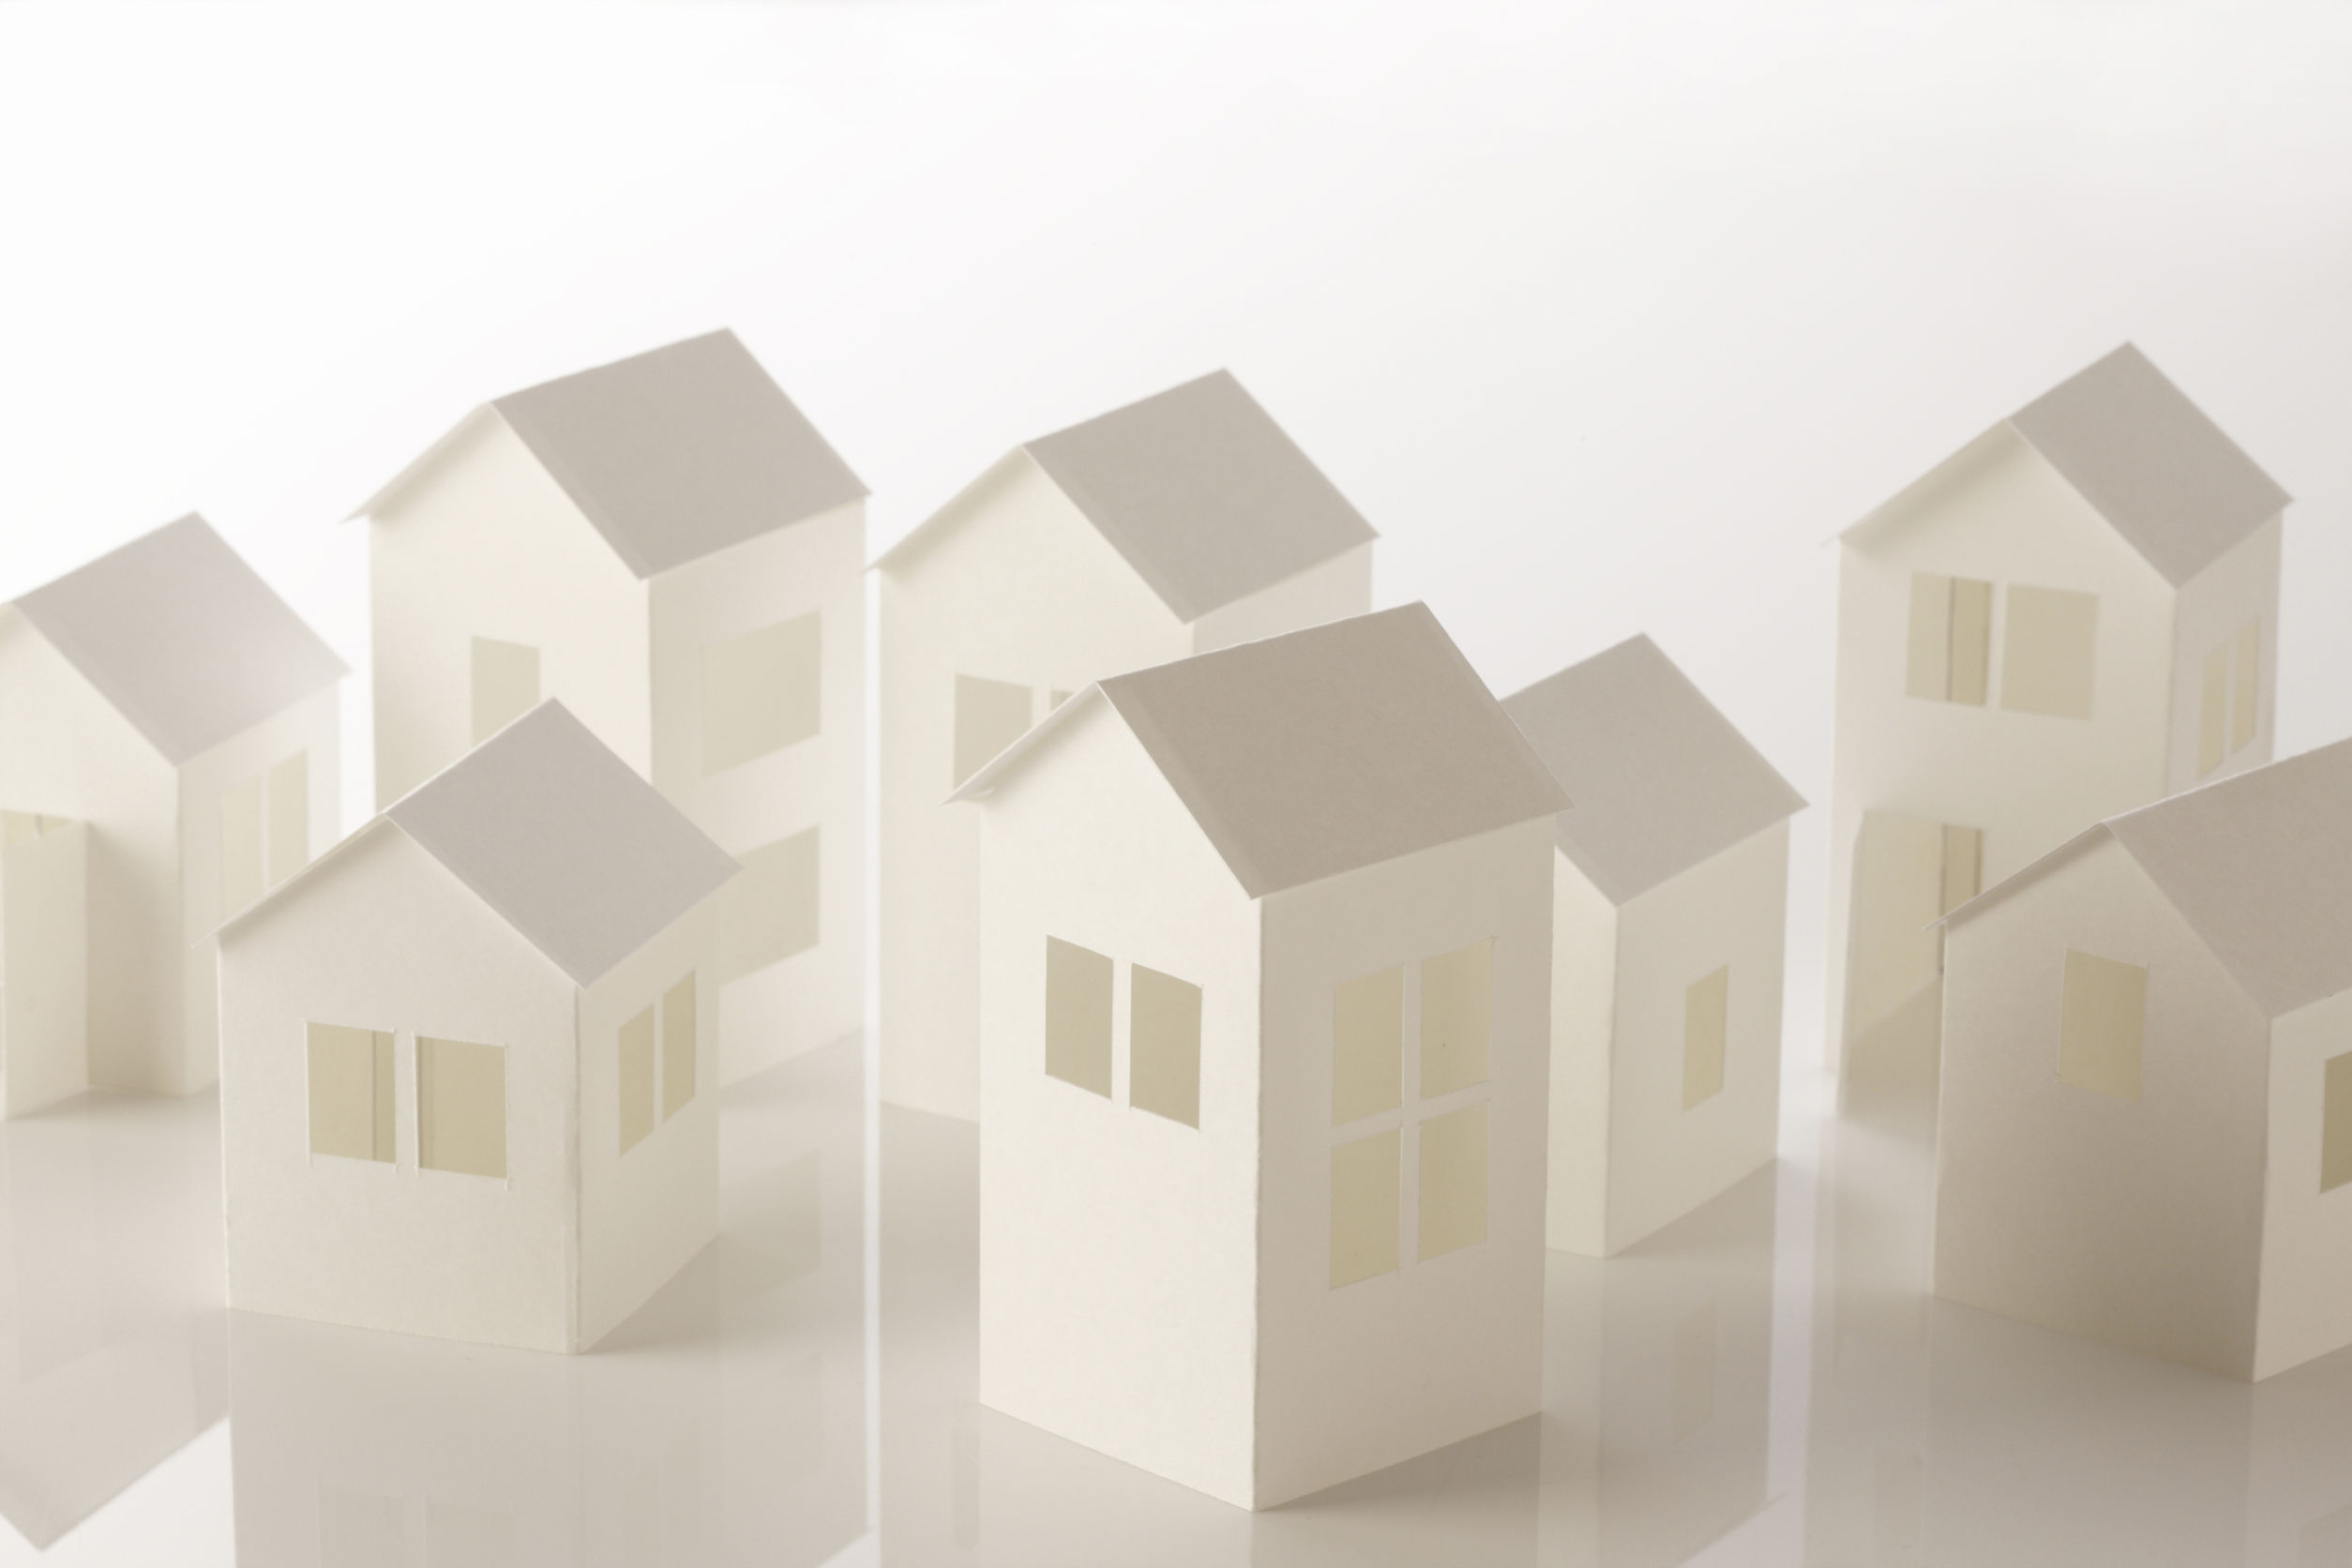 40075965 - paper crafts home